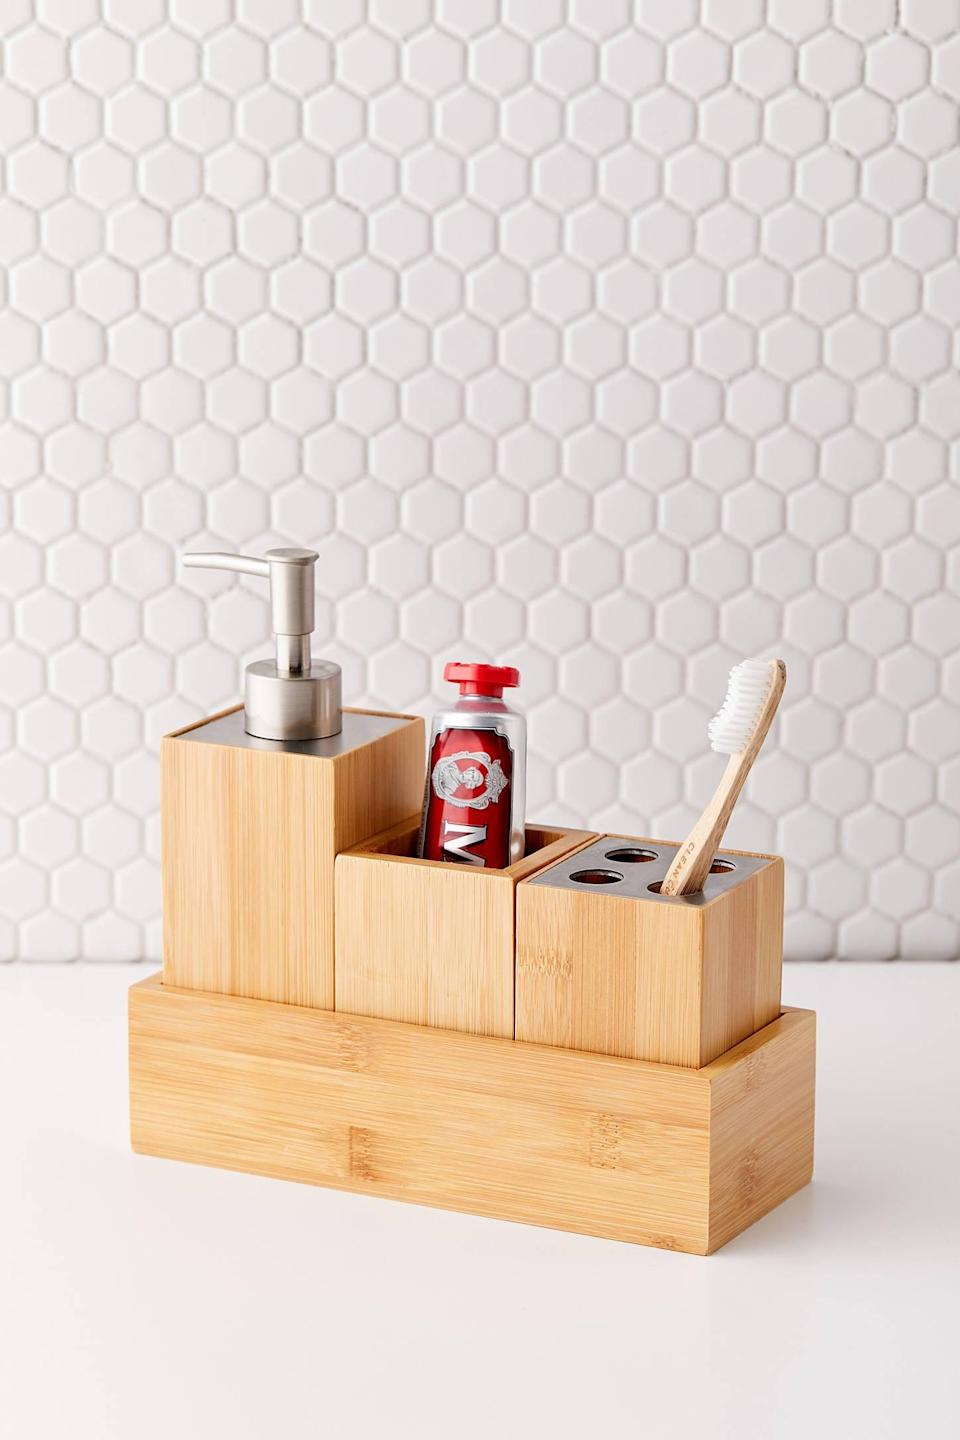 "<p>You bathroom will look neat and tidy with this <a href=""https://www.popsugar.com/buy/Bamboo-Bathroom-Organizer-Set-547058?p_name=Bamboo%20Bathroom%20Organizer%20Set&retailer=urbanoutfitters.com&pid=547058&price=49&evar1=casa%3Aus&evar9=47251564&evar98=https%3A%2F%2Fwww.popsugar.com%2Fhome%2Fphoto-gallery%2F47251564%2Fimage%2F47251610%2FBamboo-Bathroom-Organizer-Set&list1=cleaning%2Corganization%2Cspring%20cleaning%2Csmall%20space%20living%2Cbathrooms%2Chome%20organization&prop13=mobile&pdata=1"" class=""link rapid-noclick-resp"" rel=""nofollow noopener"" target=""_blank"" data-ylk=""slk:Bamboo Bathroom Organizer Set"">Bamboo Bathroom Organizer Set</a> ($49).</p>"